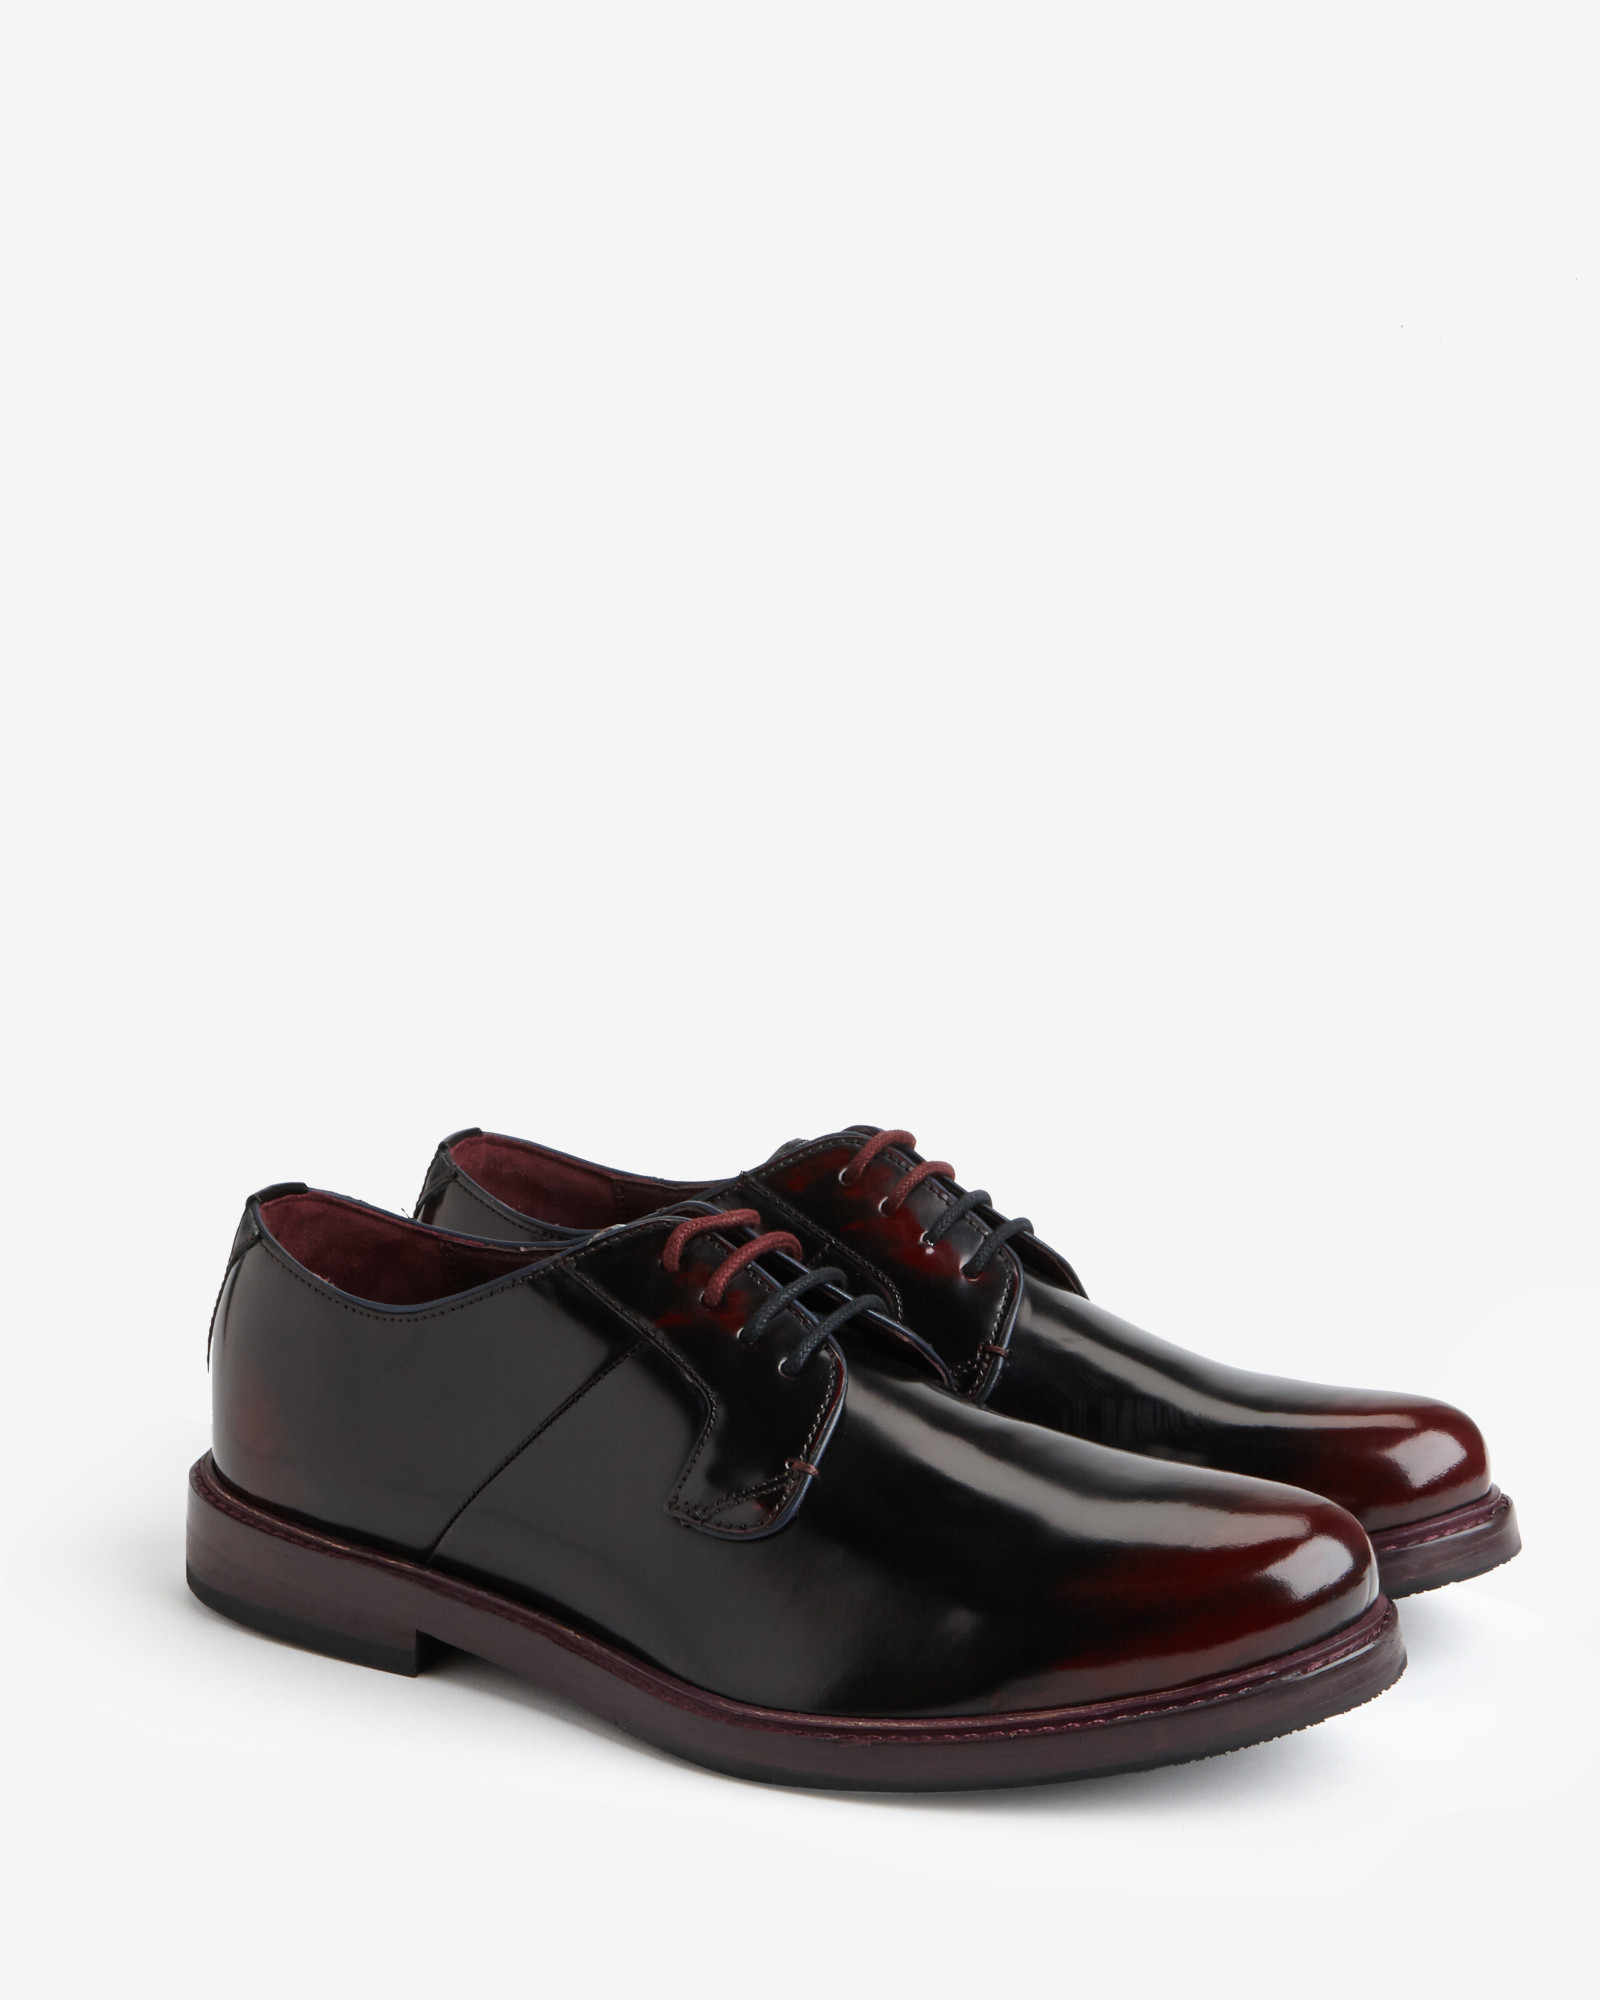 aba1eedf6d1ca1 Ted Baker High Shine Leather Derby Shoes in Red for Men - Lyst